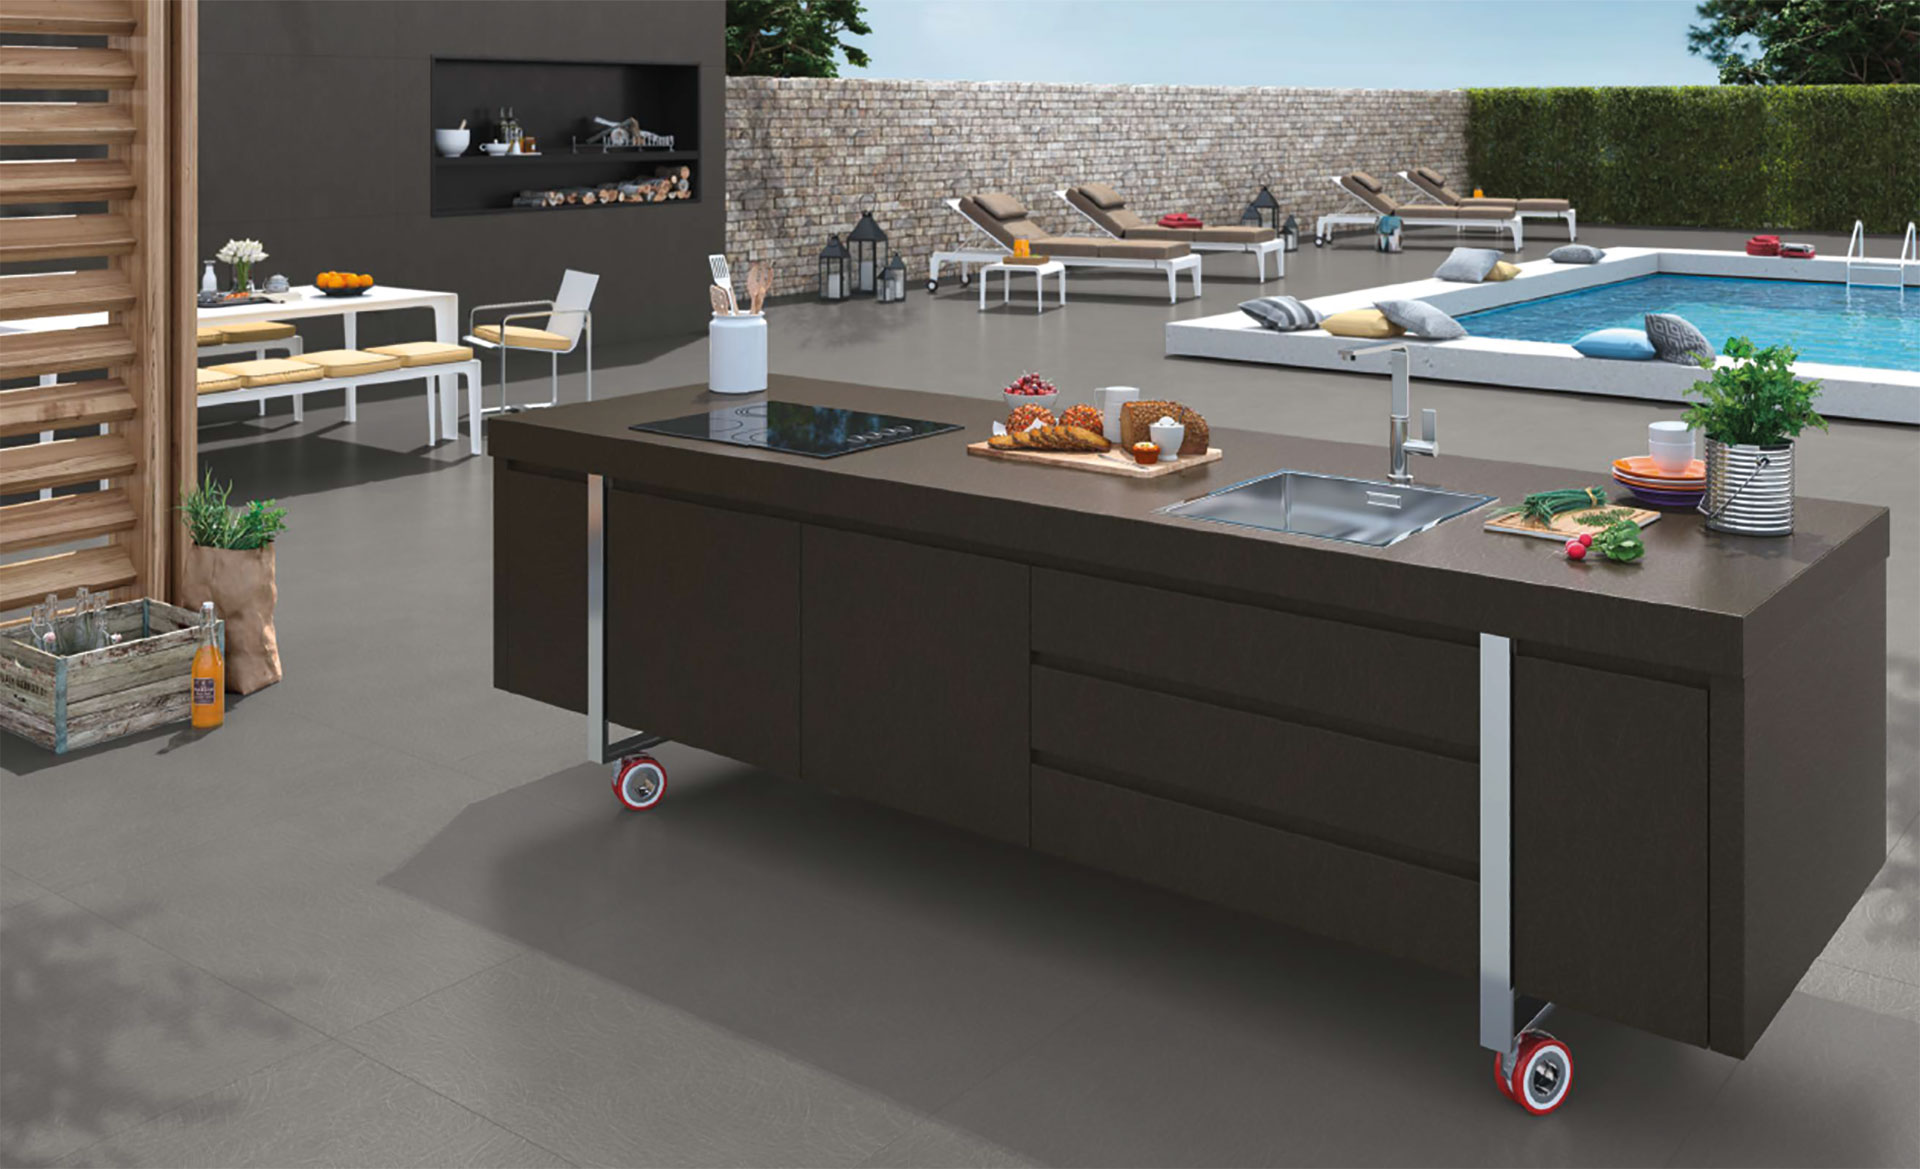 FMG porcelain surfaces: Maxfine applications for architecture and furnishings